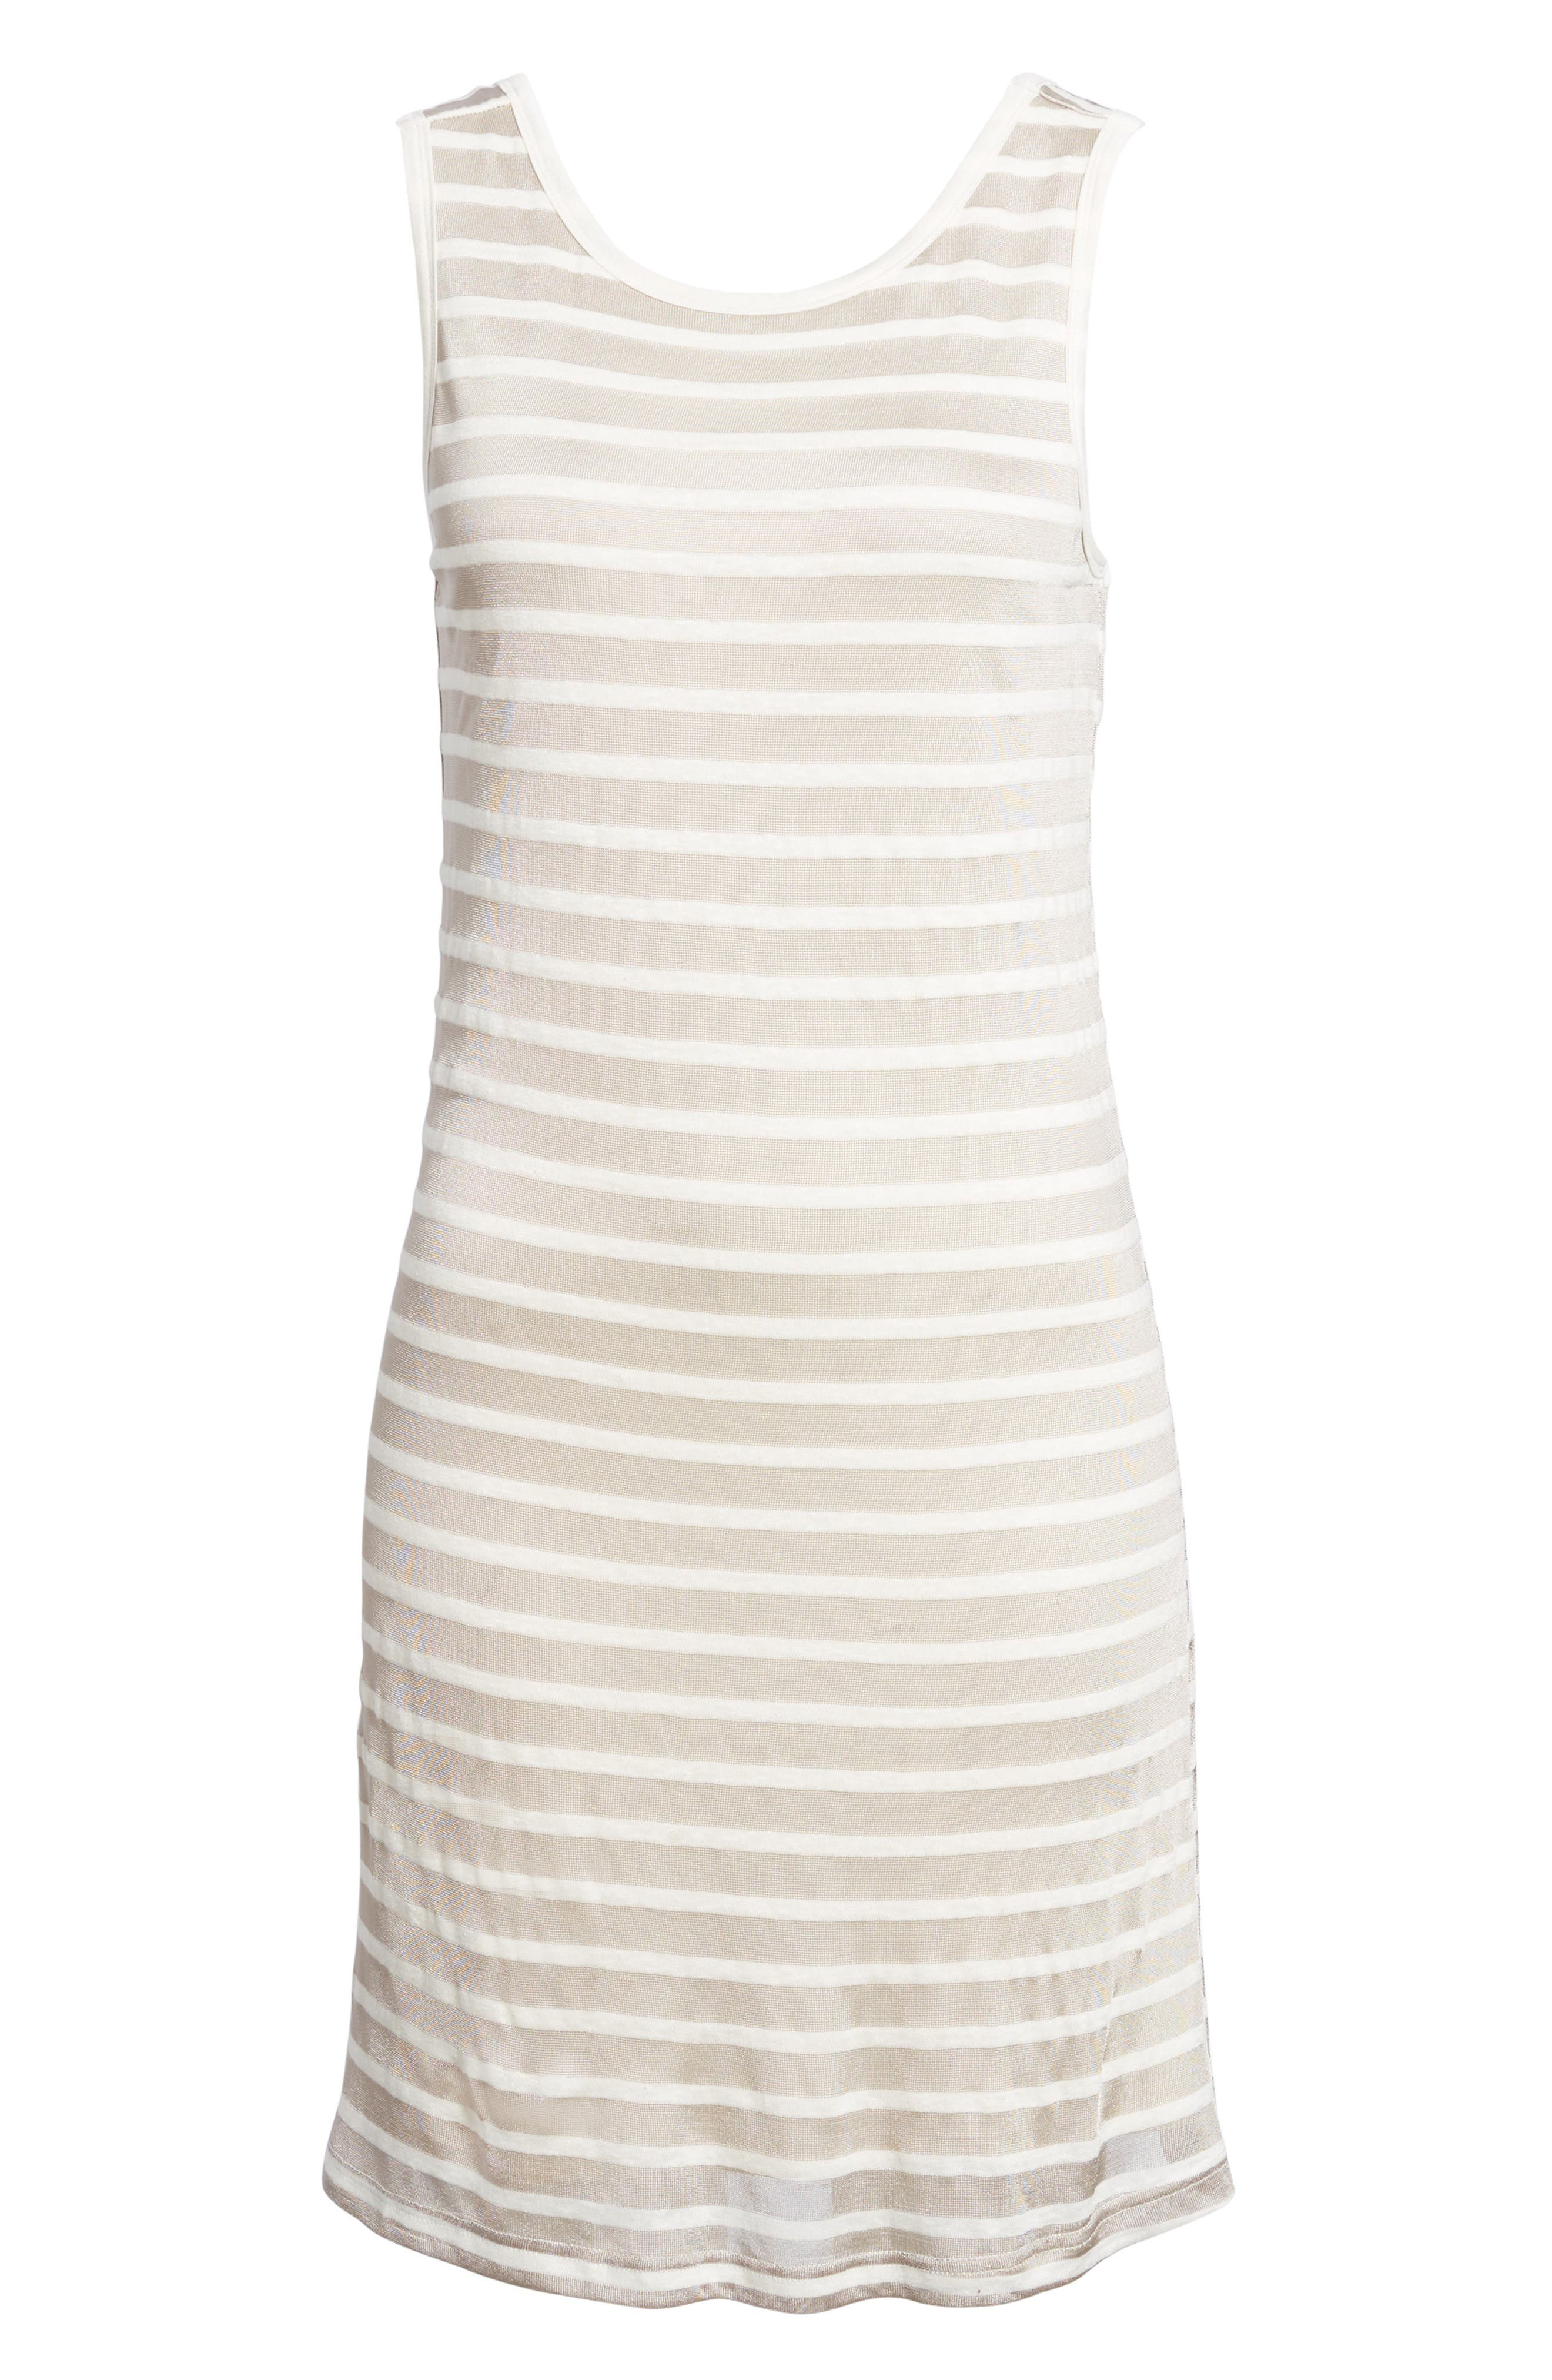 Stripe Linen Tank Dress,                             Alternate thumbnail 6, color,                             260